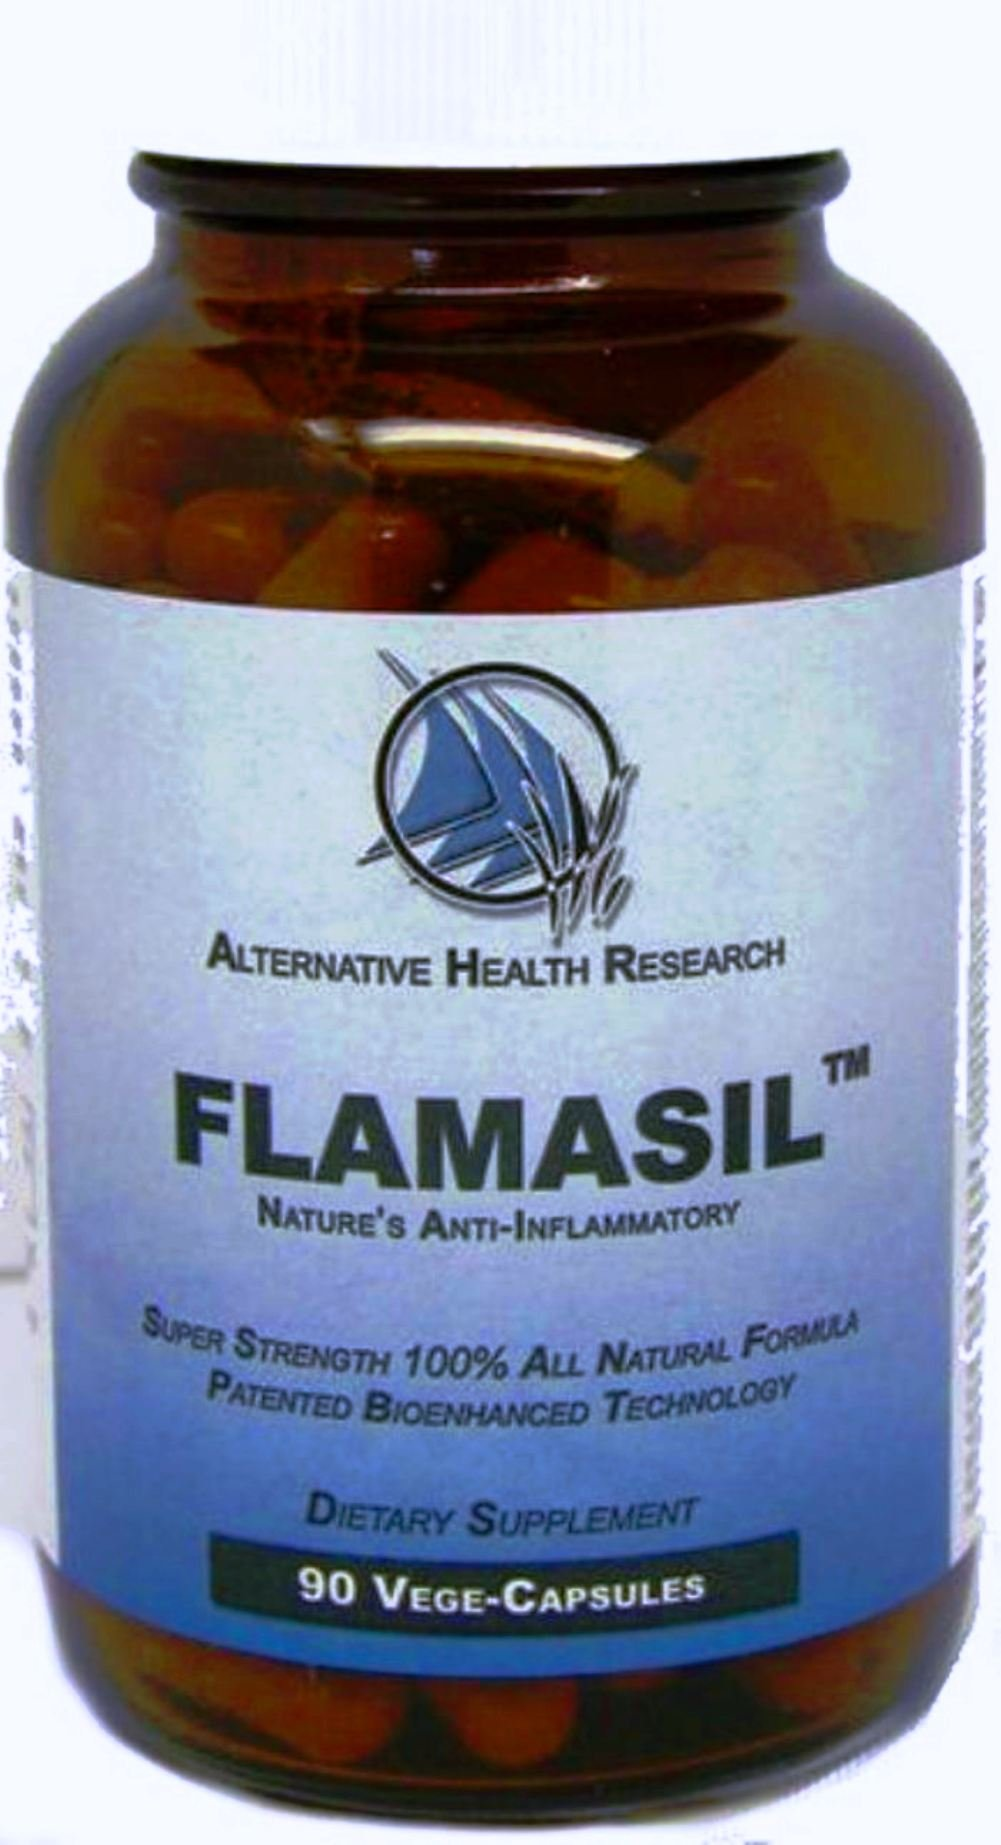 Flamasil ™- Whole Body Therapy, Cleanser & Uric Acid Extractor 90 Vege Capsule